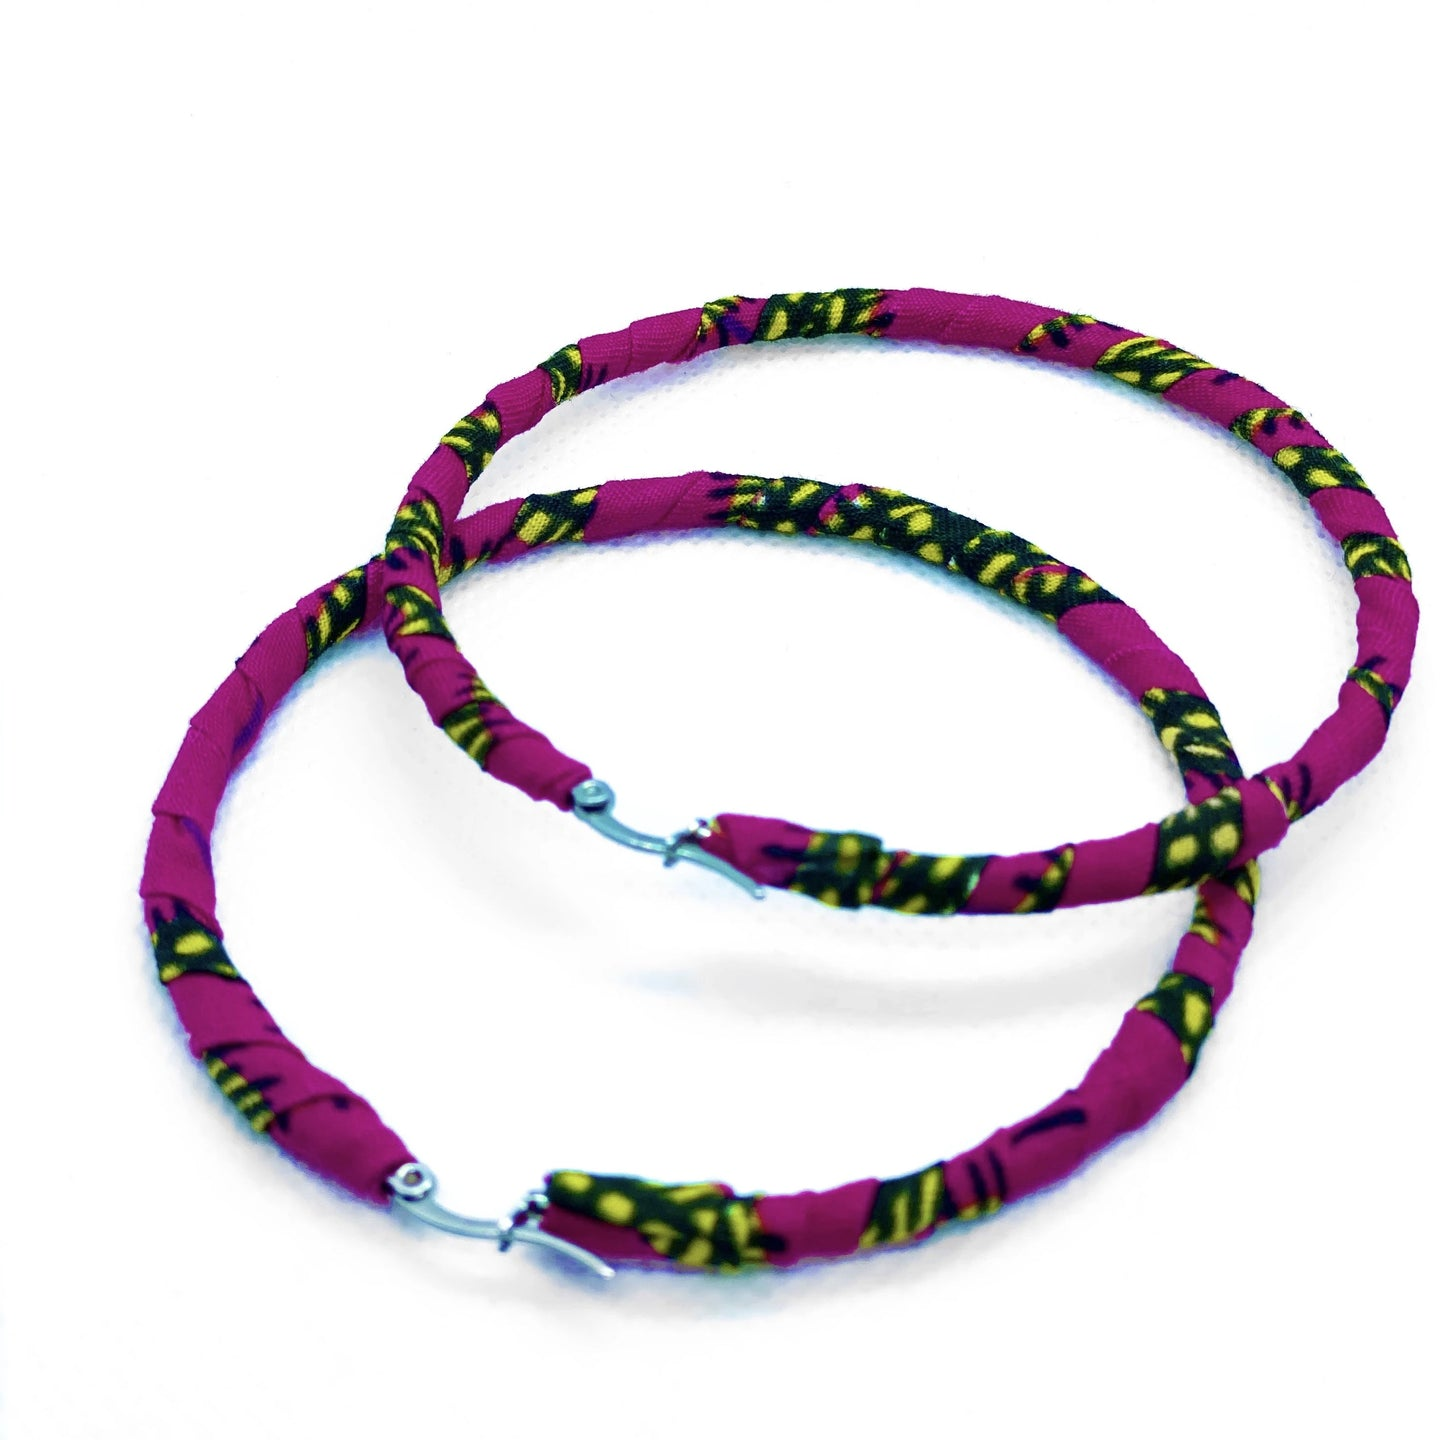 Handmade African Print hoop earrings. This classic hoop earrings with a modern african twist is perfect for both day and night time style.